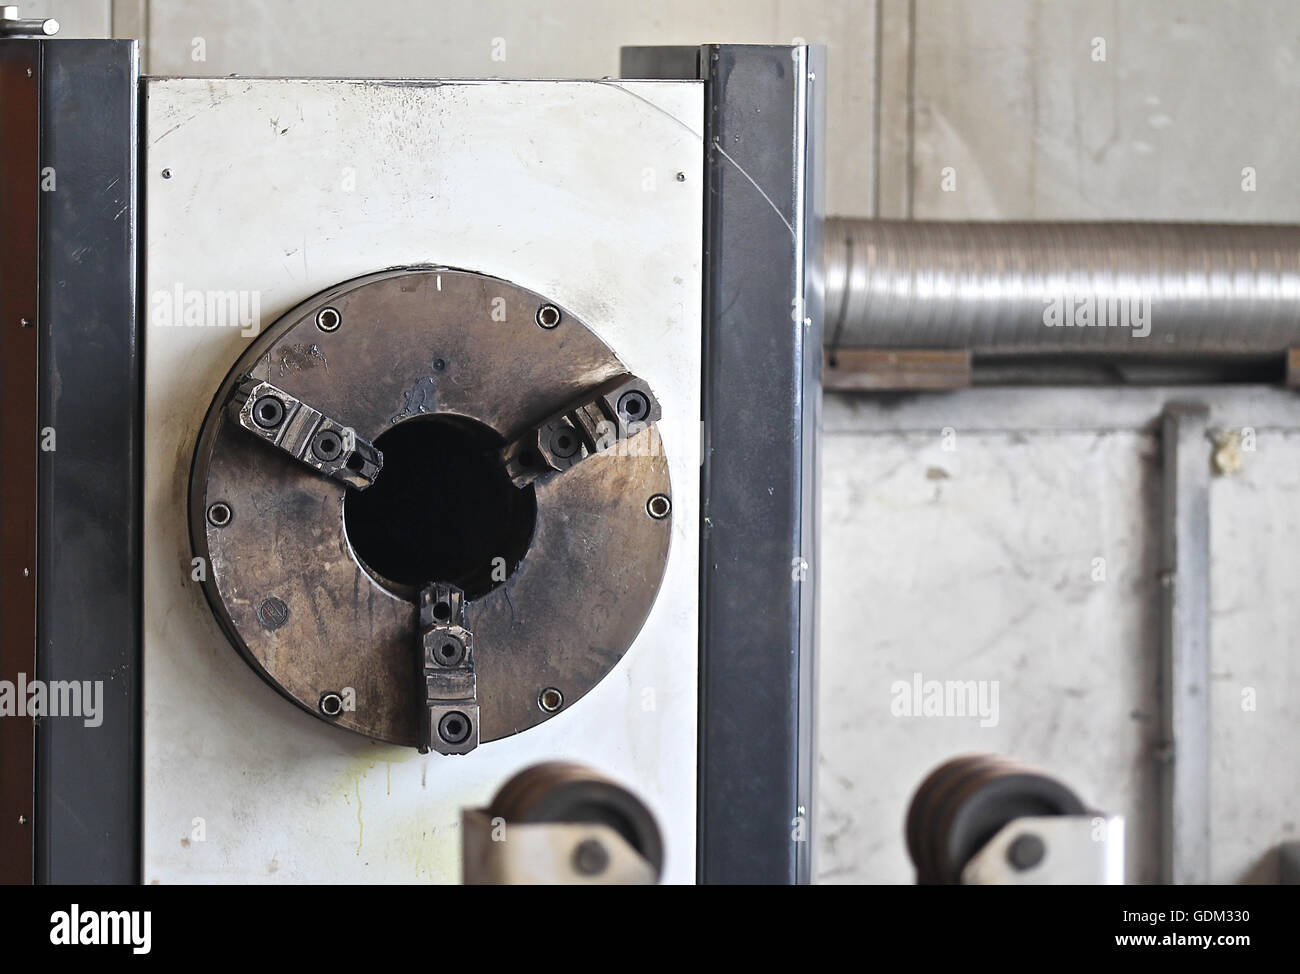 Termination spindle centering device securing the workpiece machine tool - Stock Image